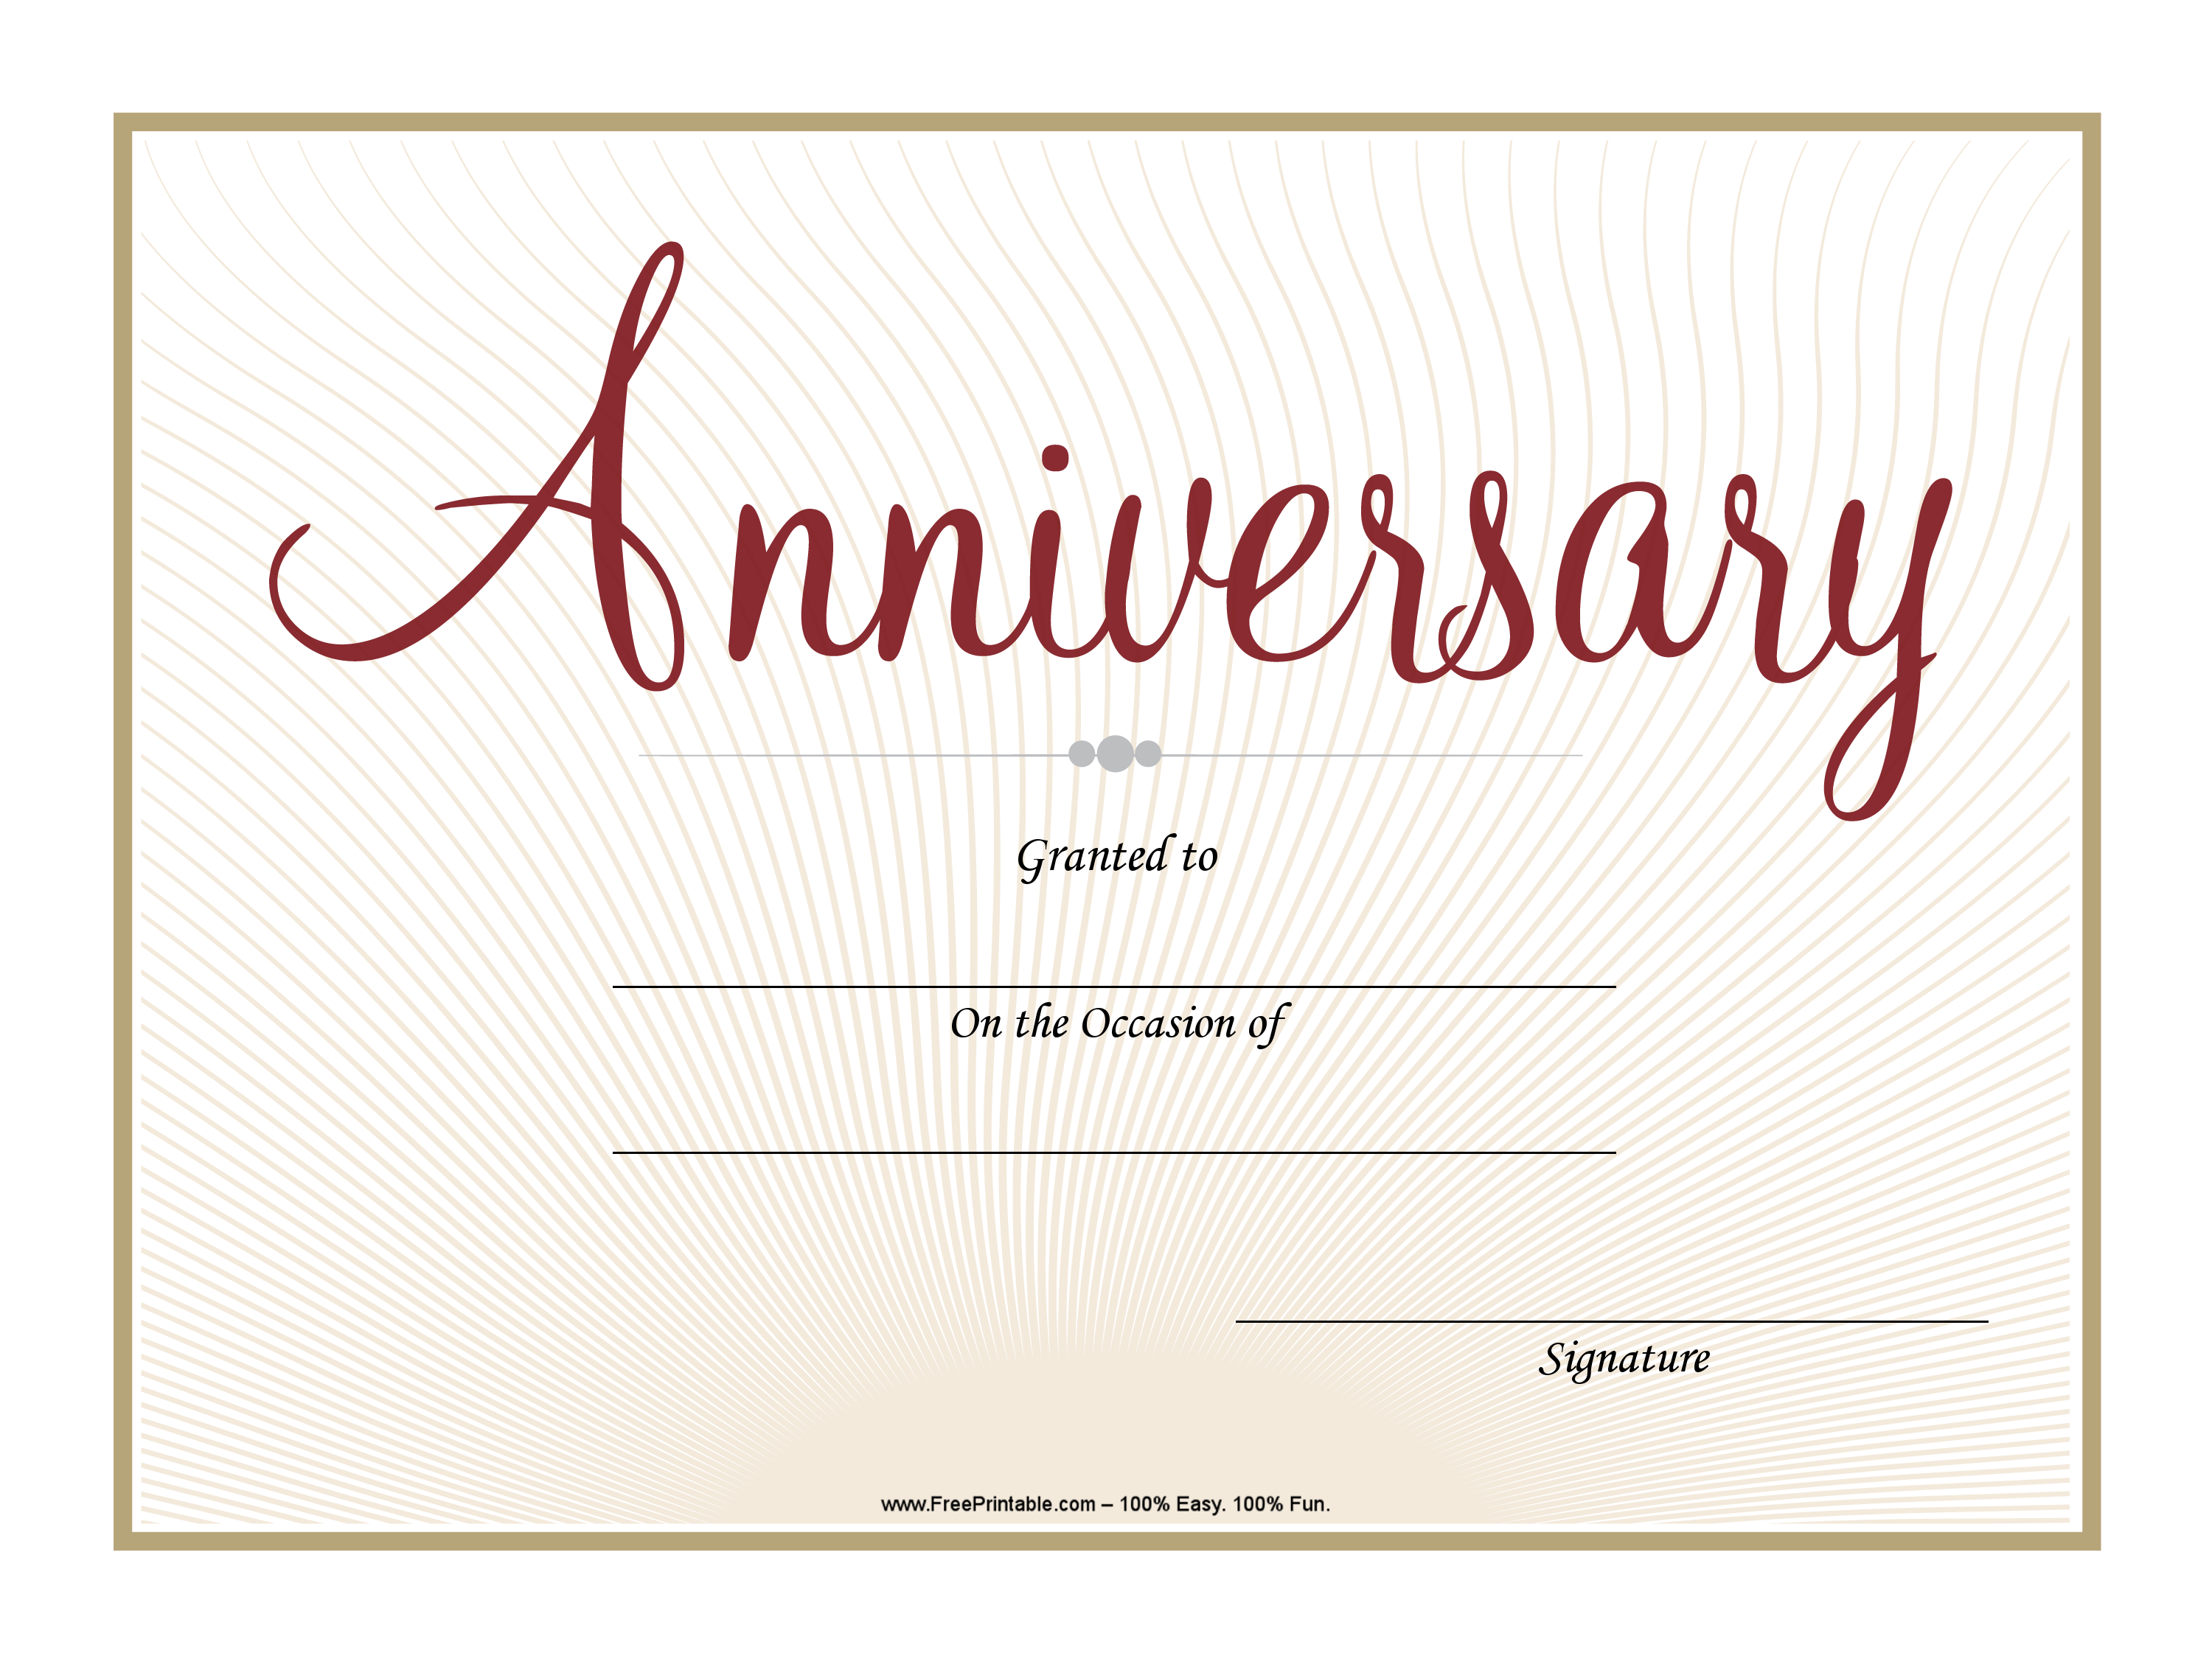 Customize Your Free Printable Cursive Anniversary Certificate